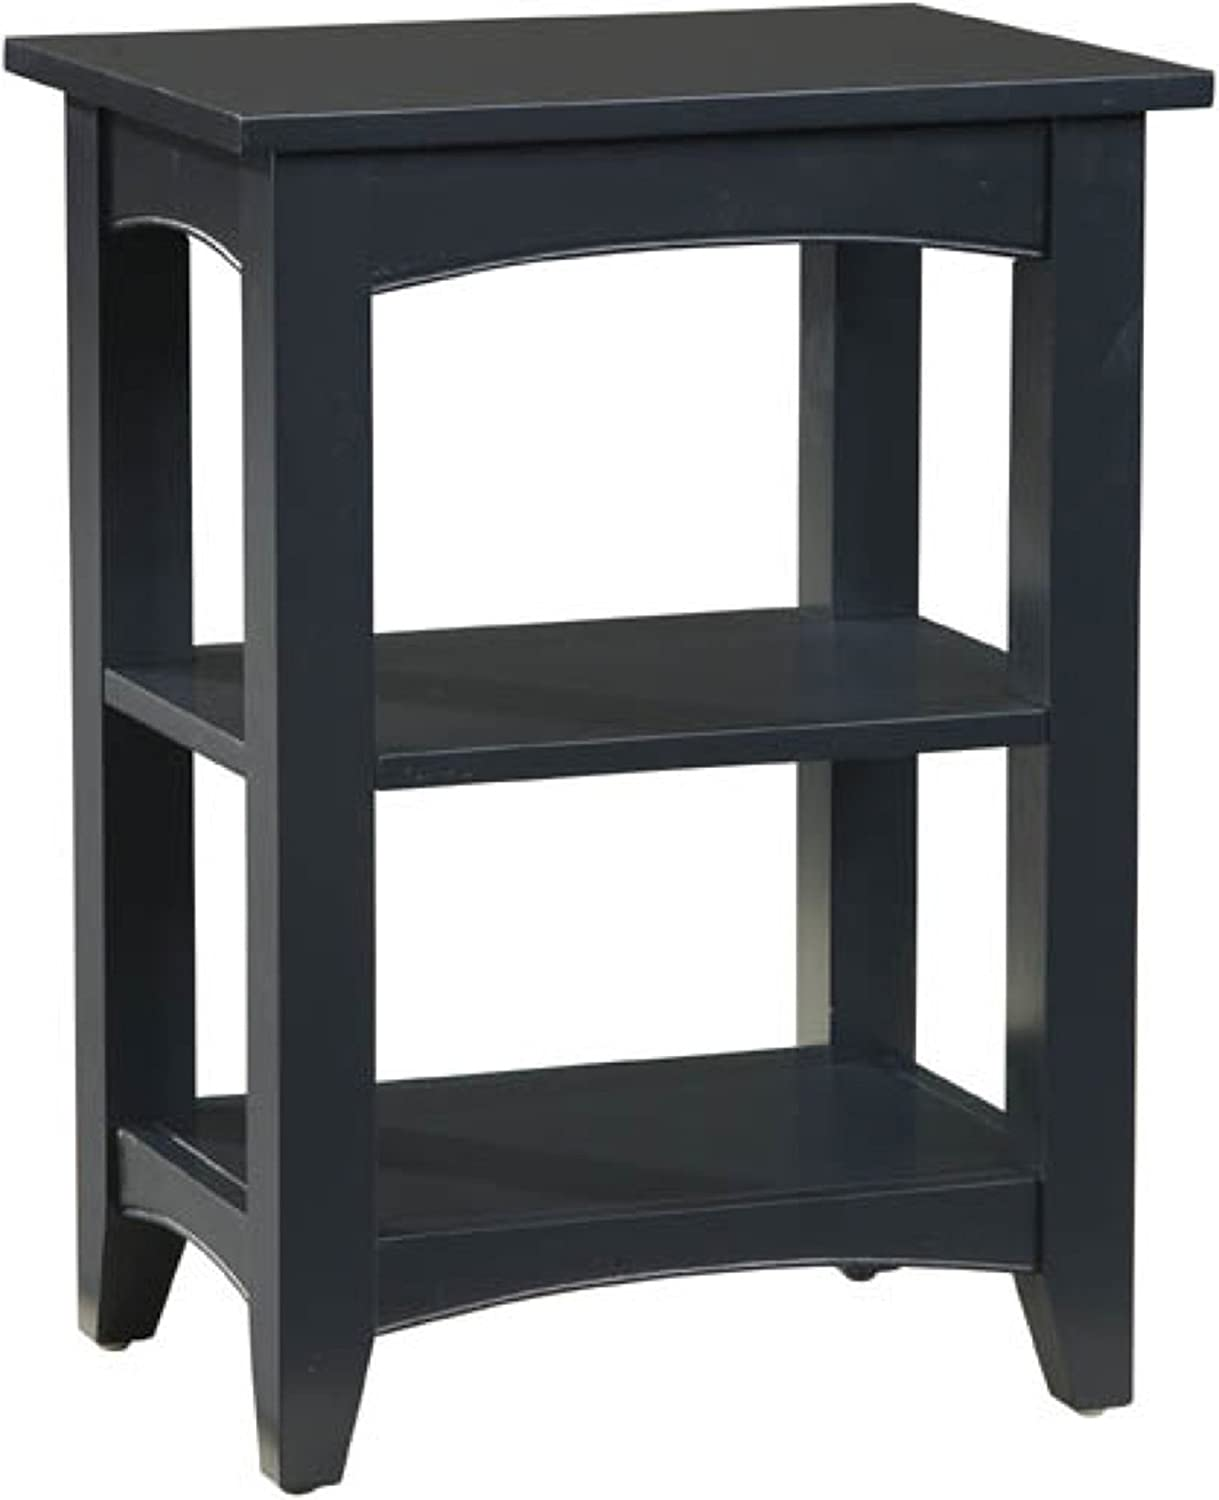 Alaterre Shaker Cottage End Table with 2 Shelves, Charcoal Gray